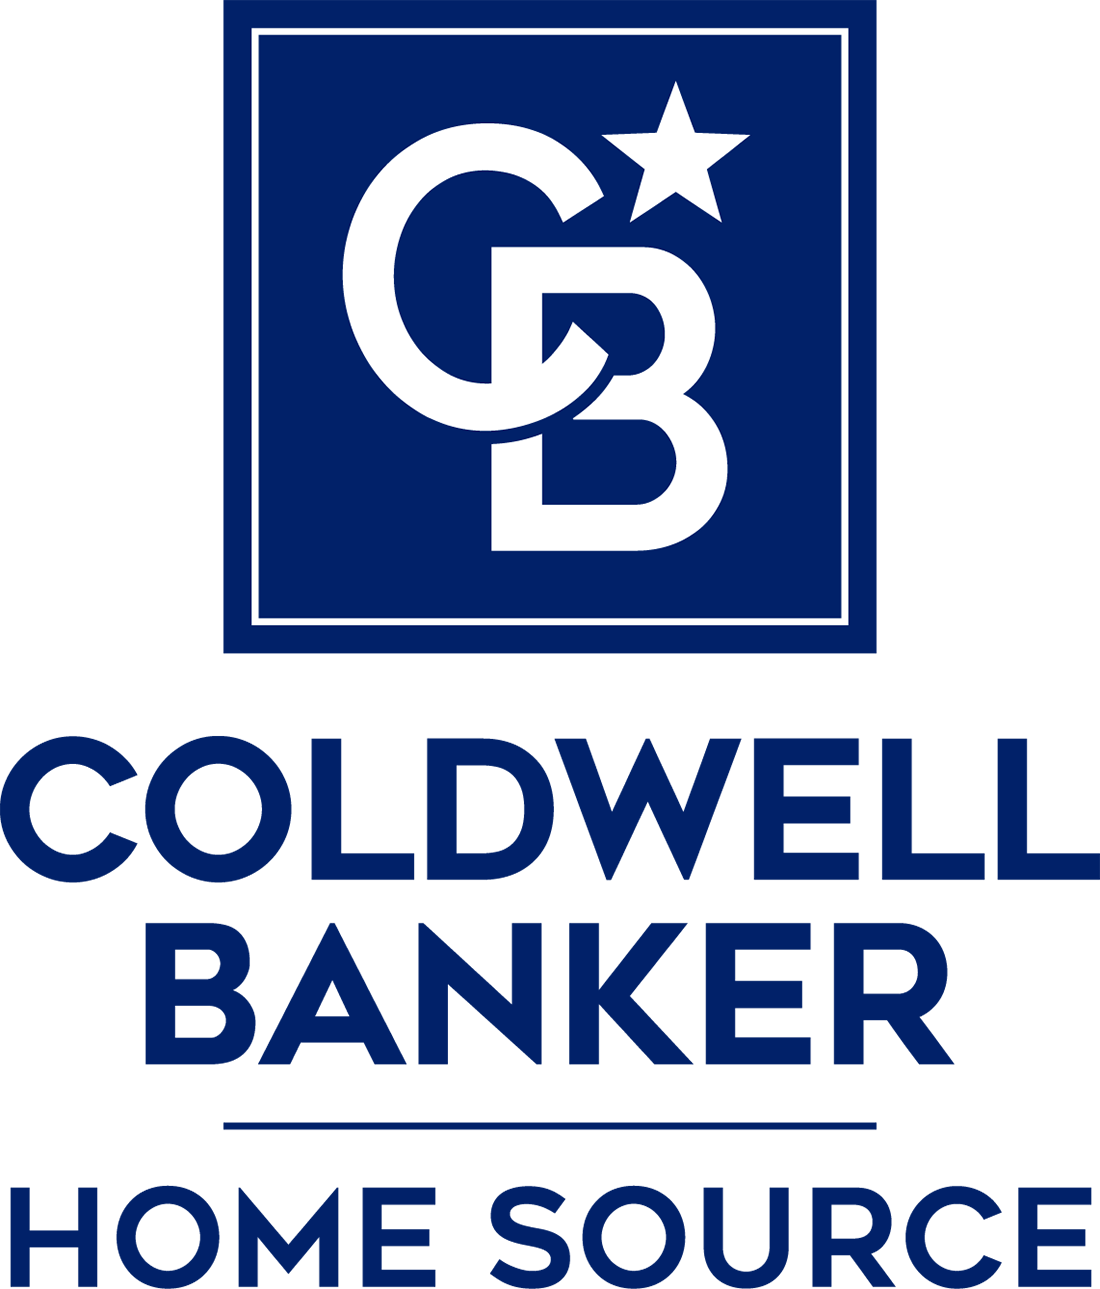 TJ Carpino - Coldwell Banker Home Source Logo